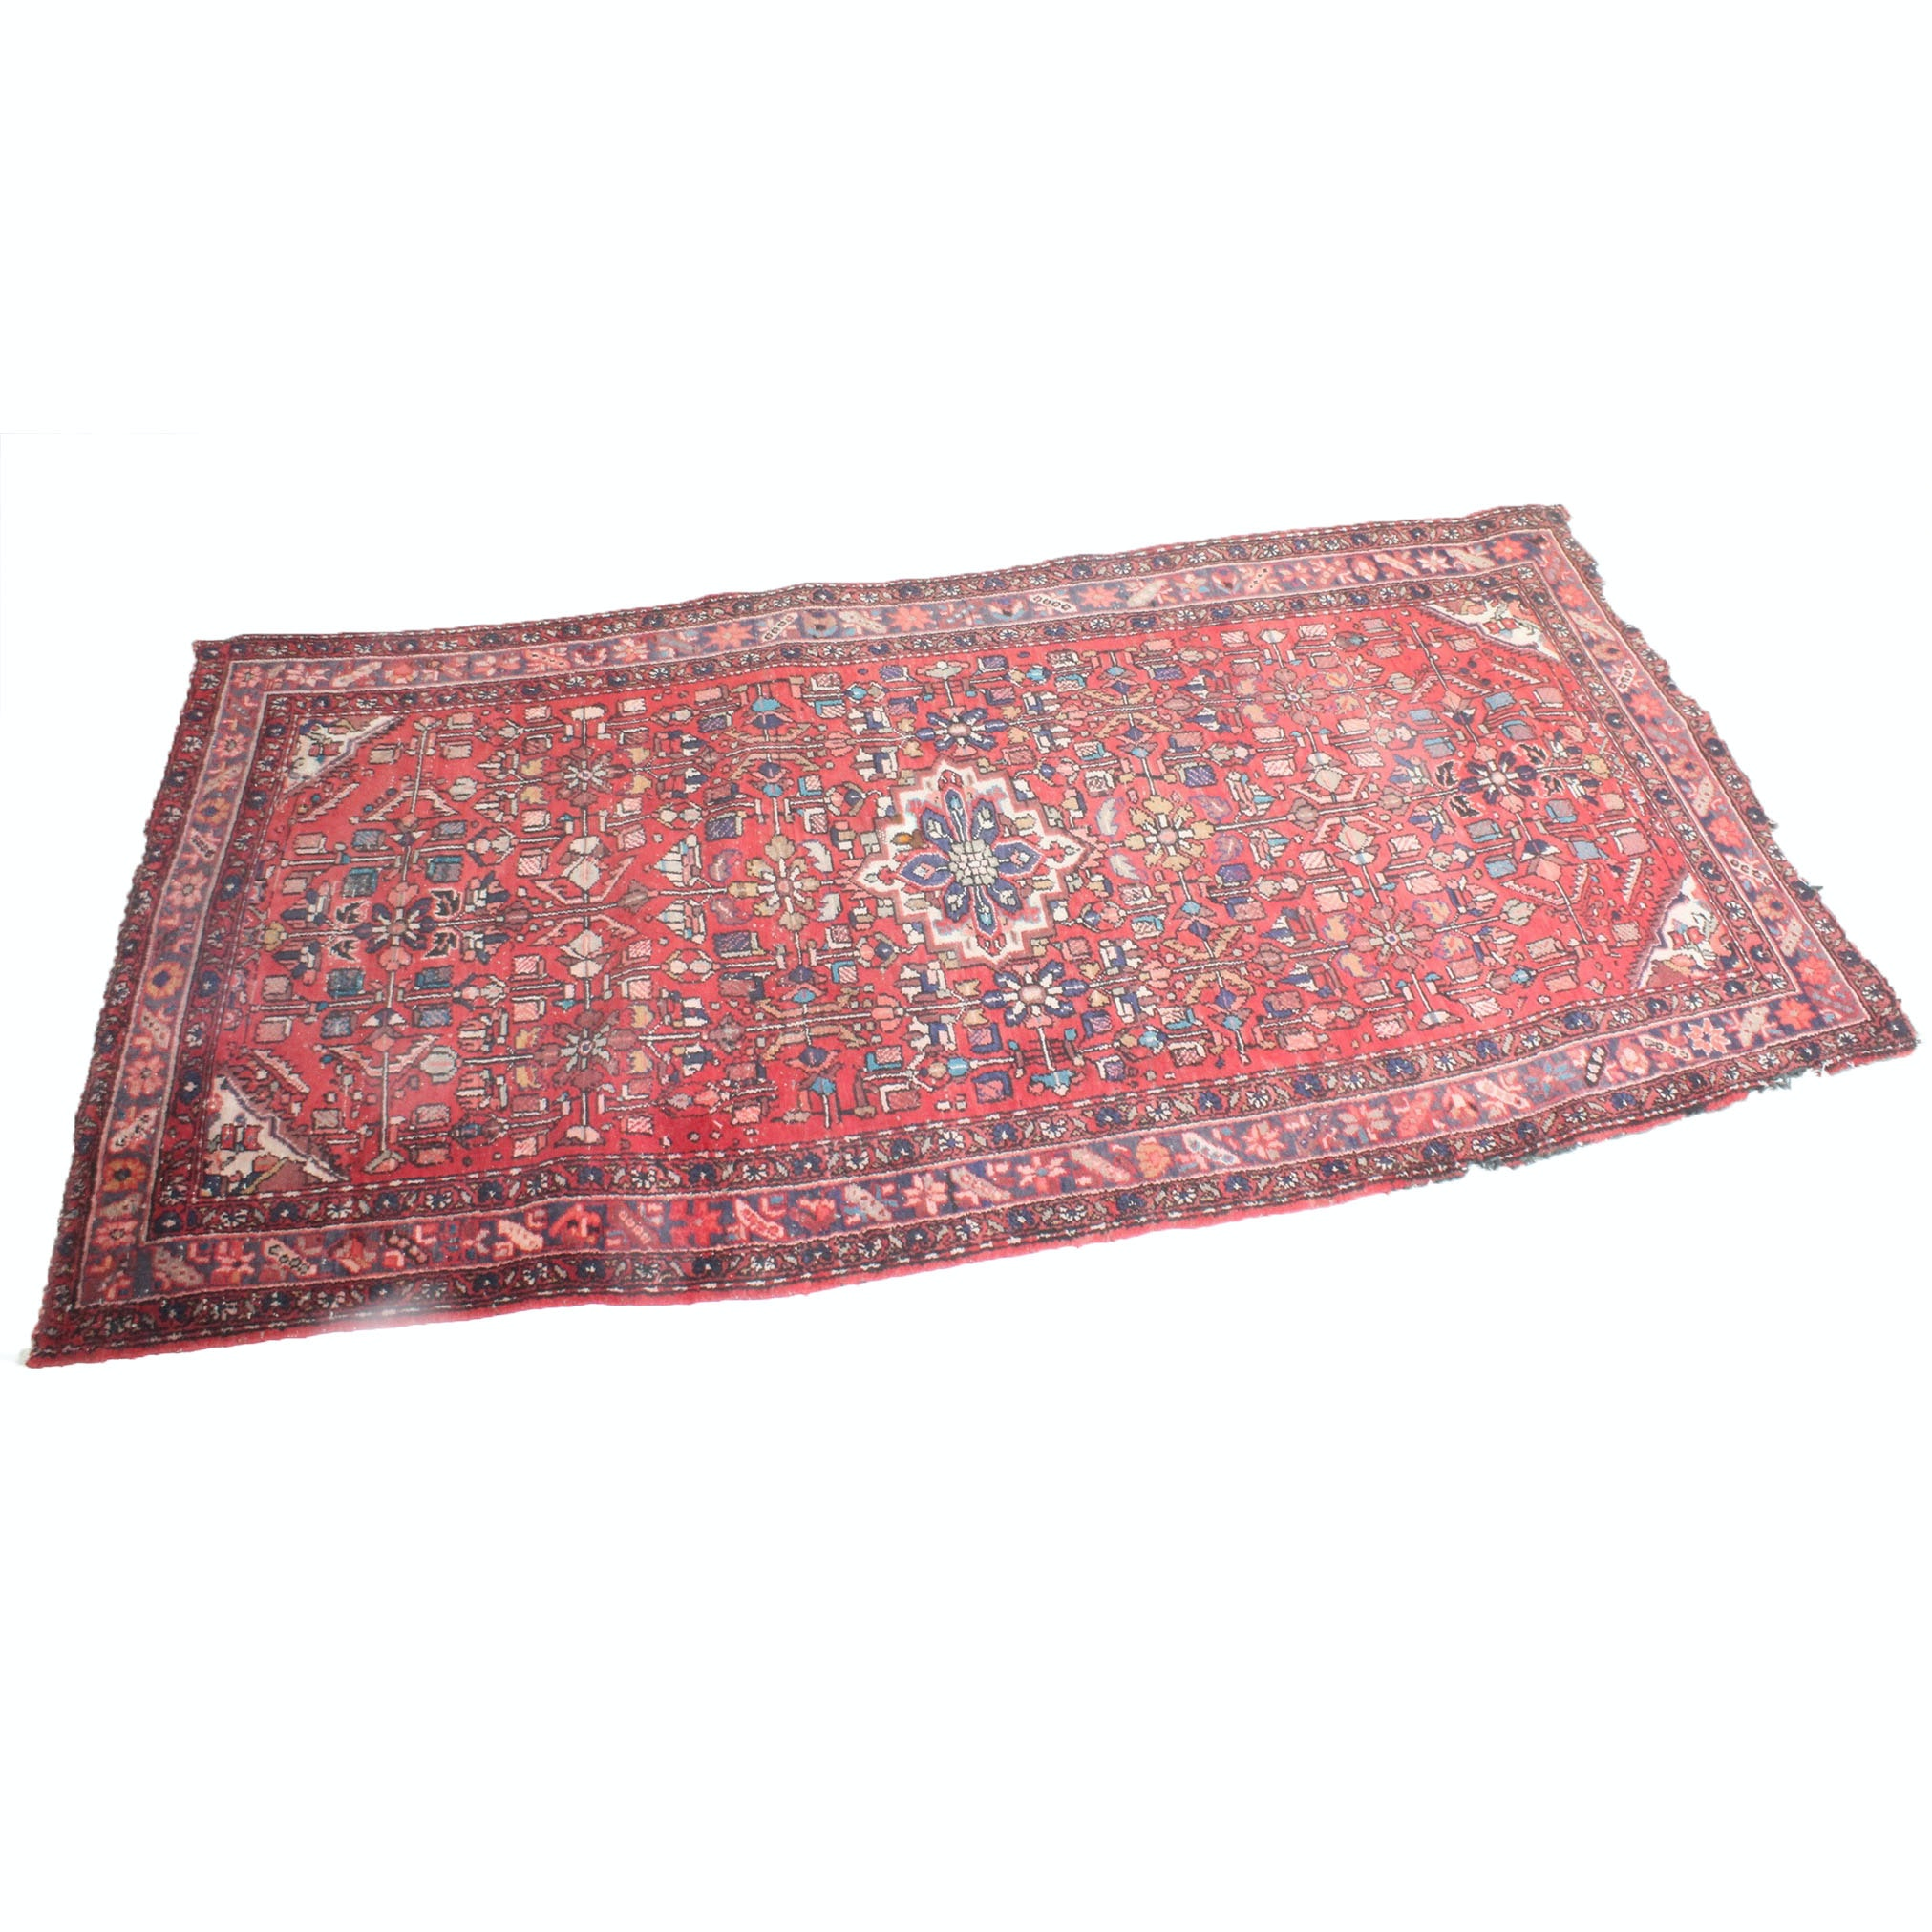 Hand-Knotted Persian Malayer Room Size Rug